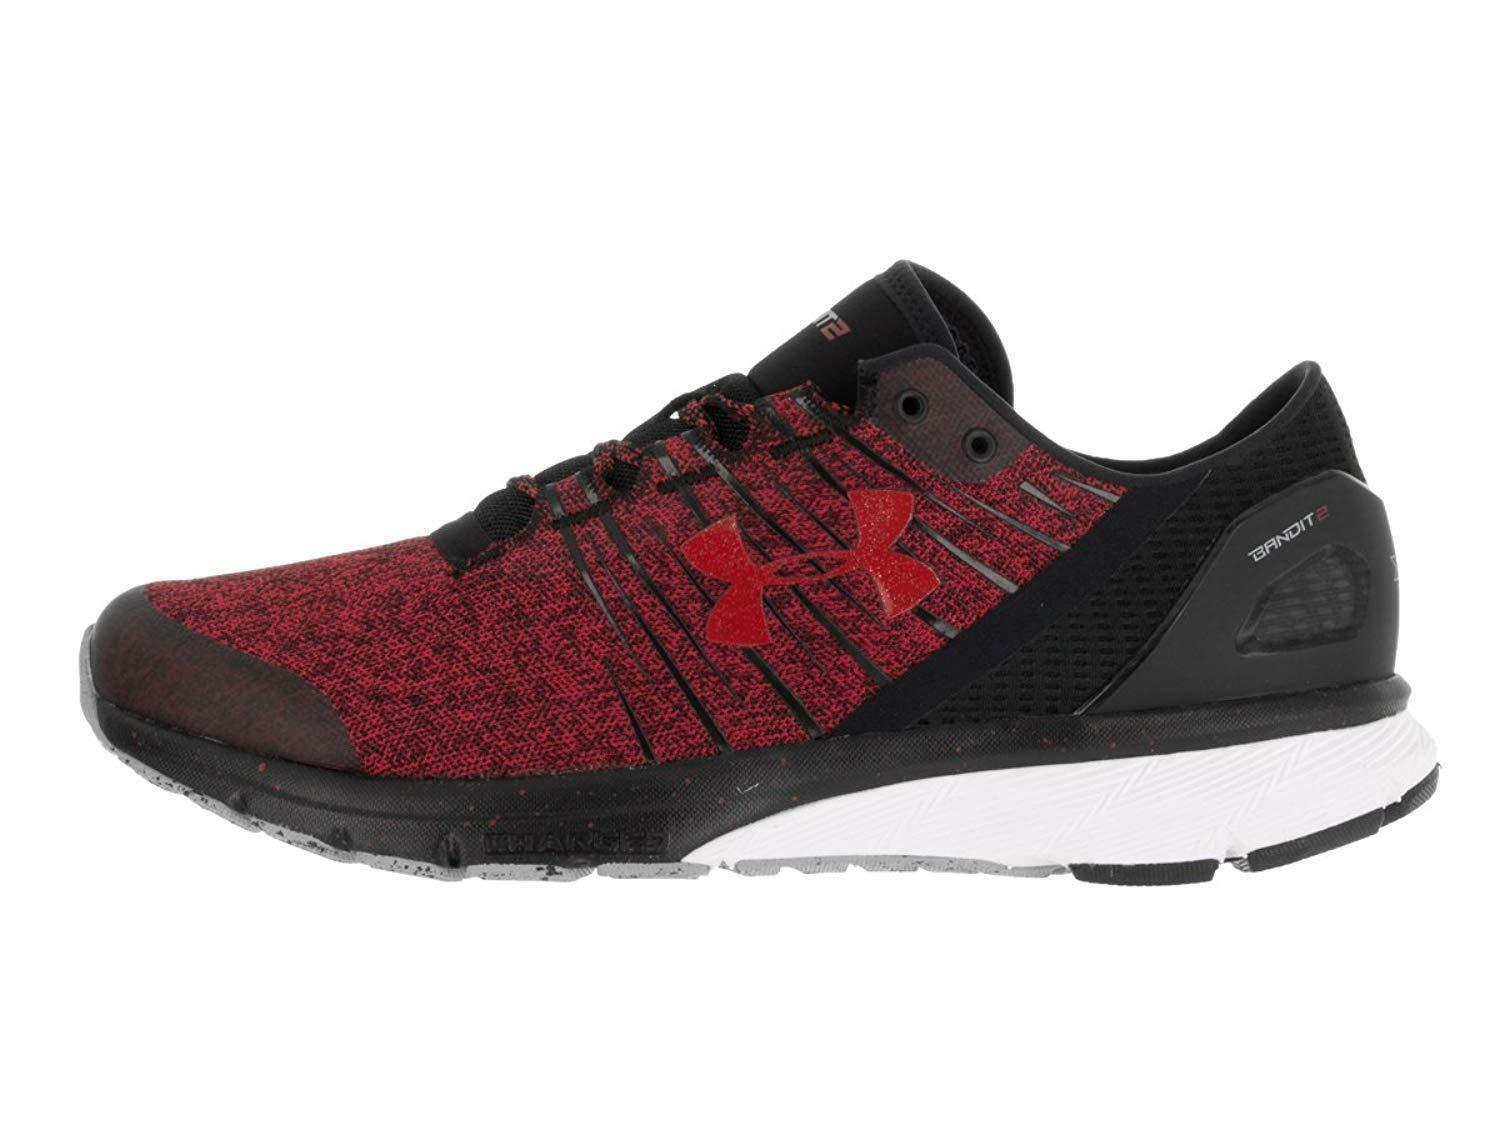 Under Armour Uomo UA Charged Bandit 2 Running Shoes